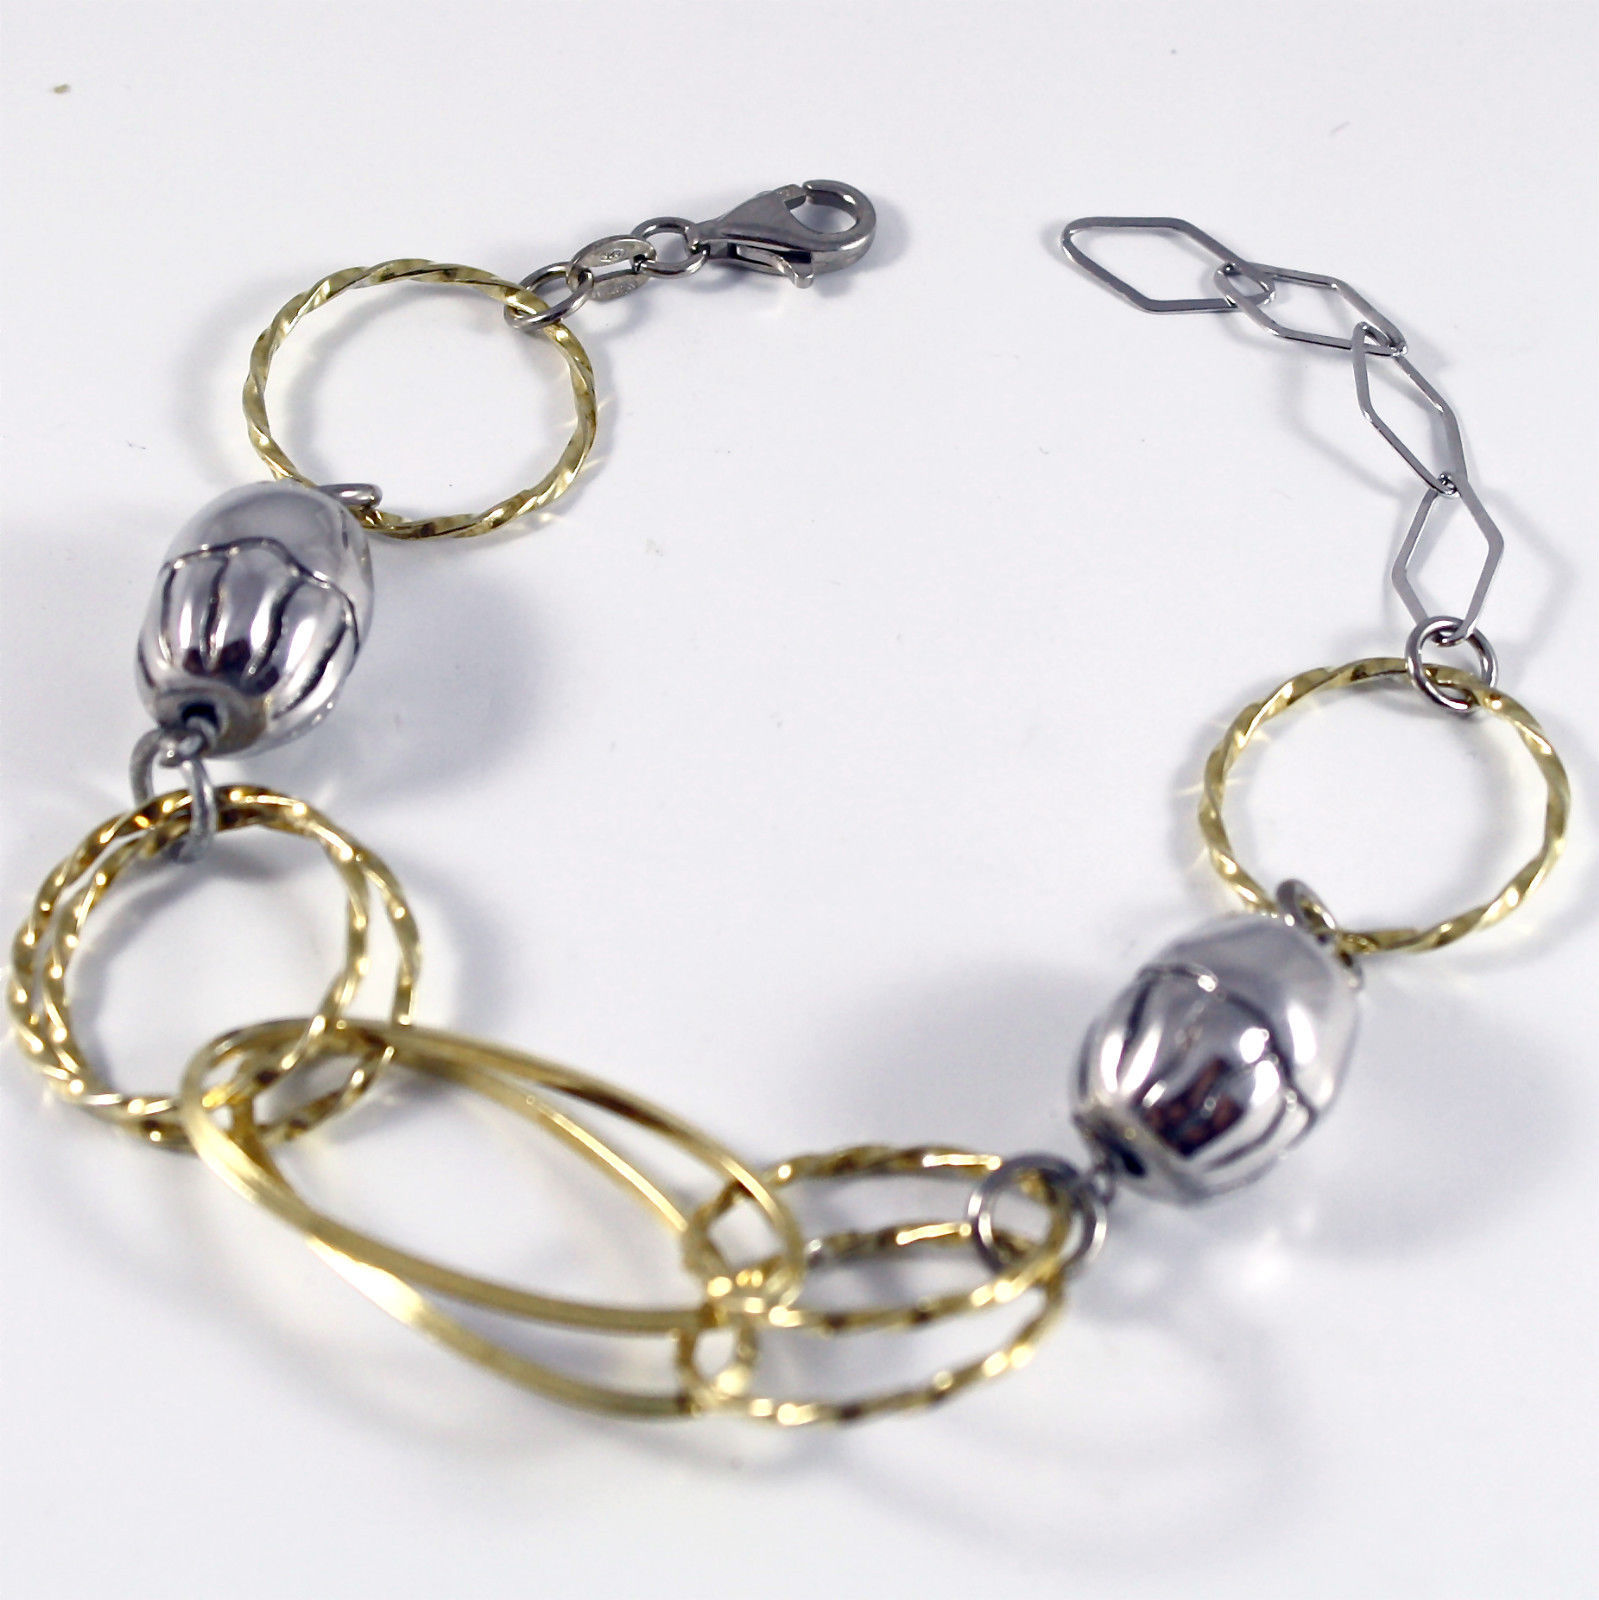 Bracelet in Sterling Silver 925 Rhodium, Yellow Gold Plated, sweaters worked